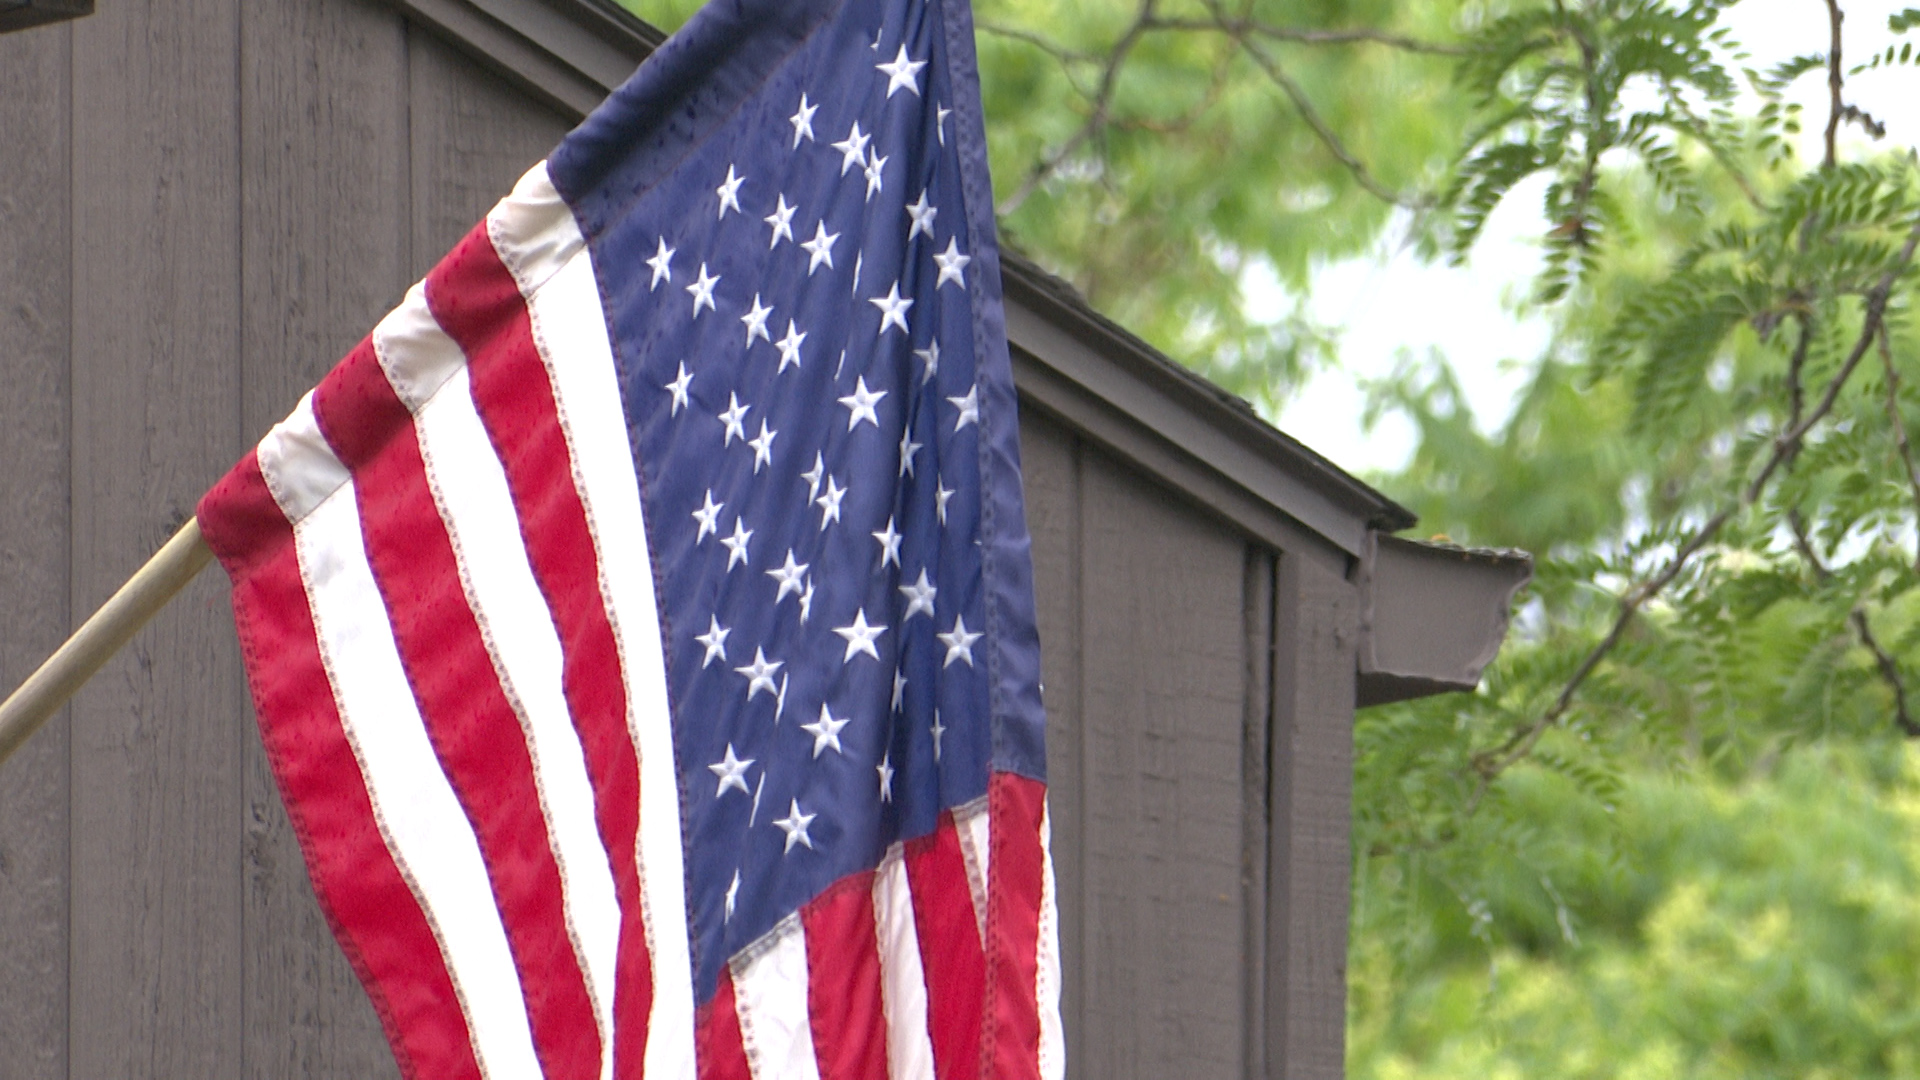 U.S. flag hangs from a front porch